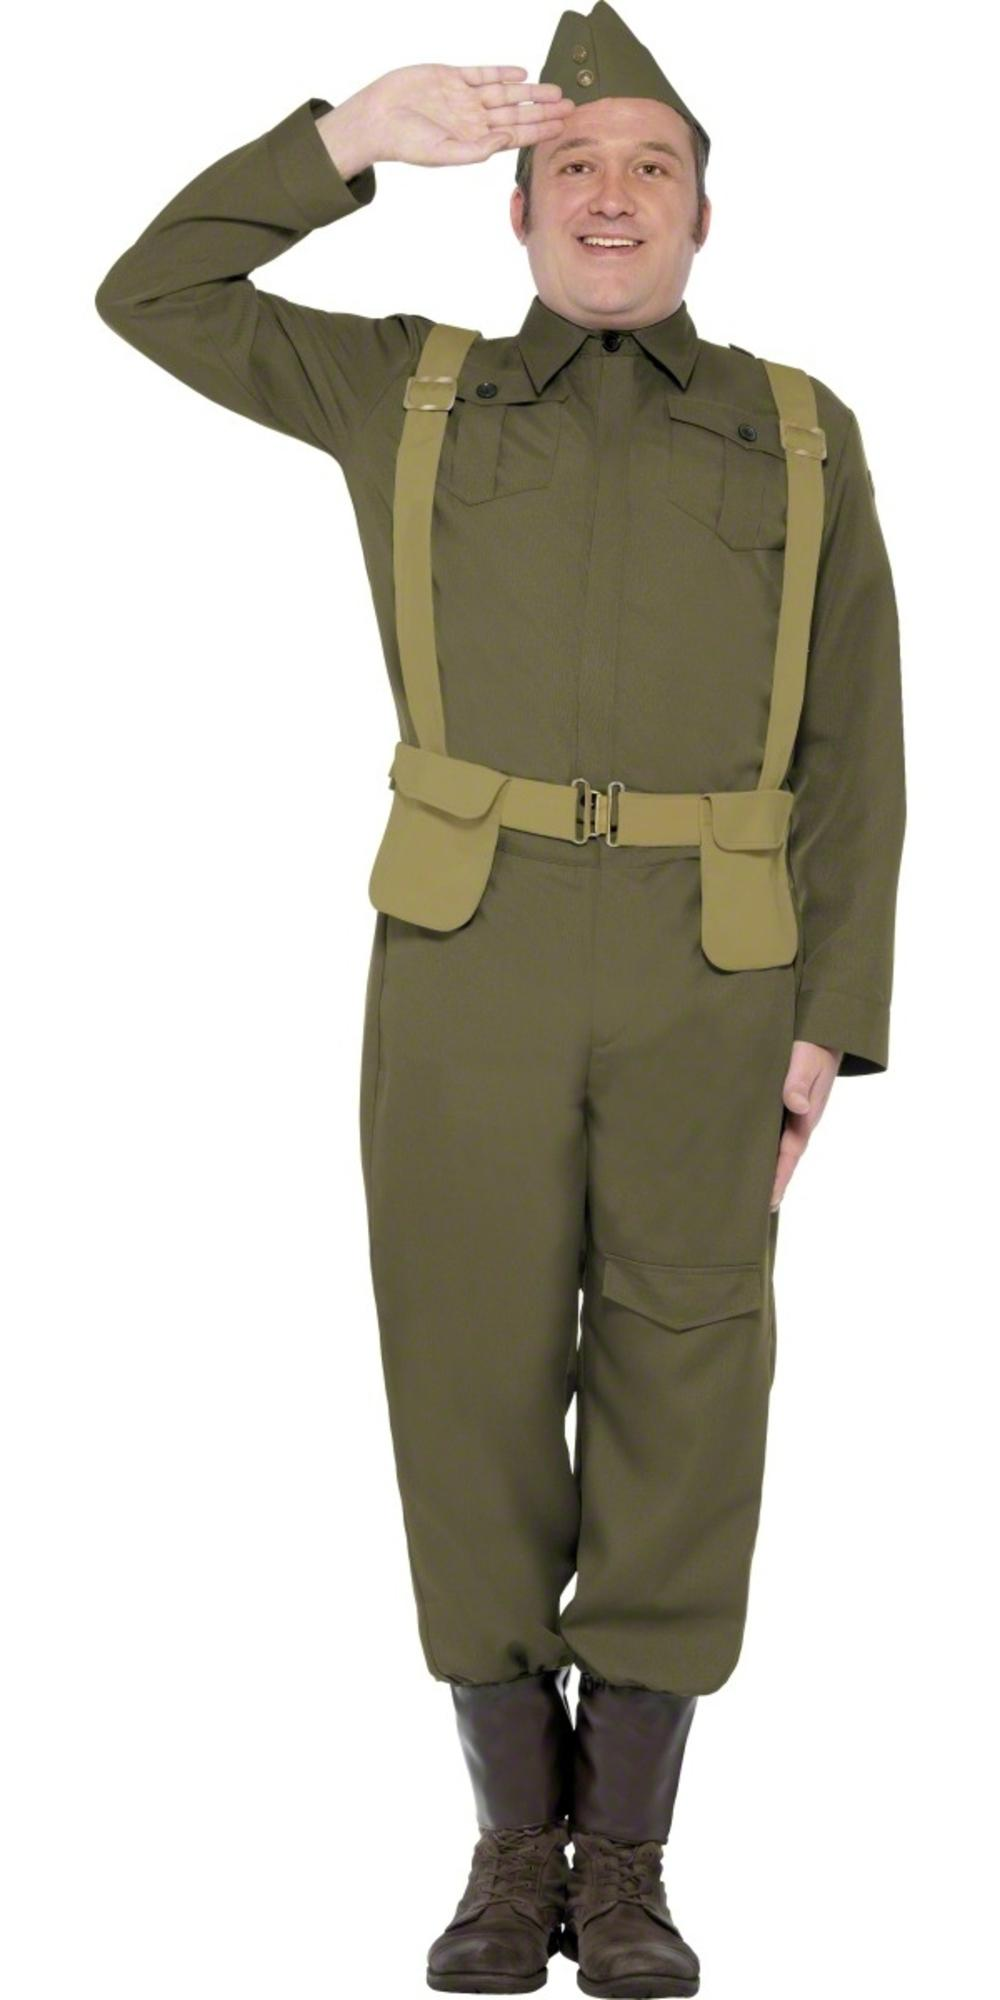 Home Guard Private Mens Fancy Dress 1940s WW2 Dads Army Military Adults Costume